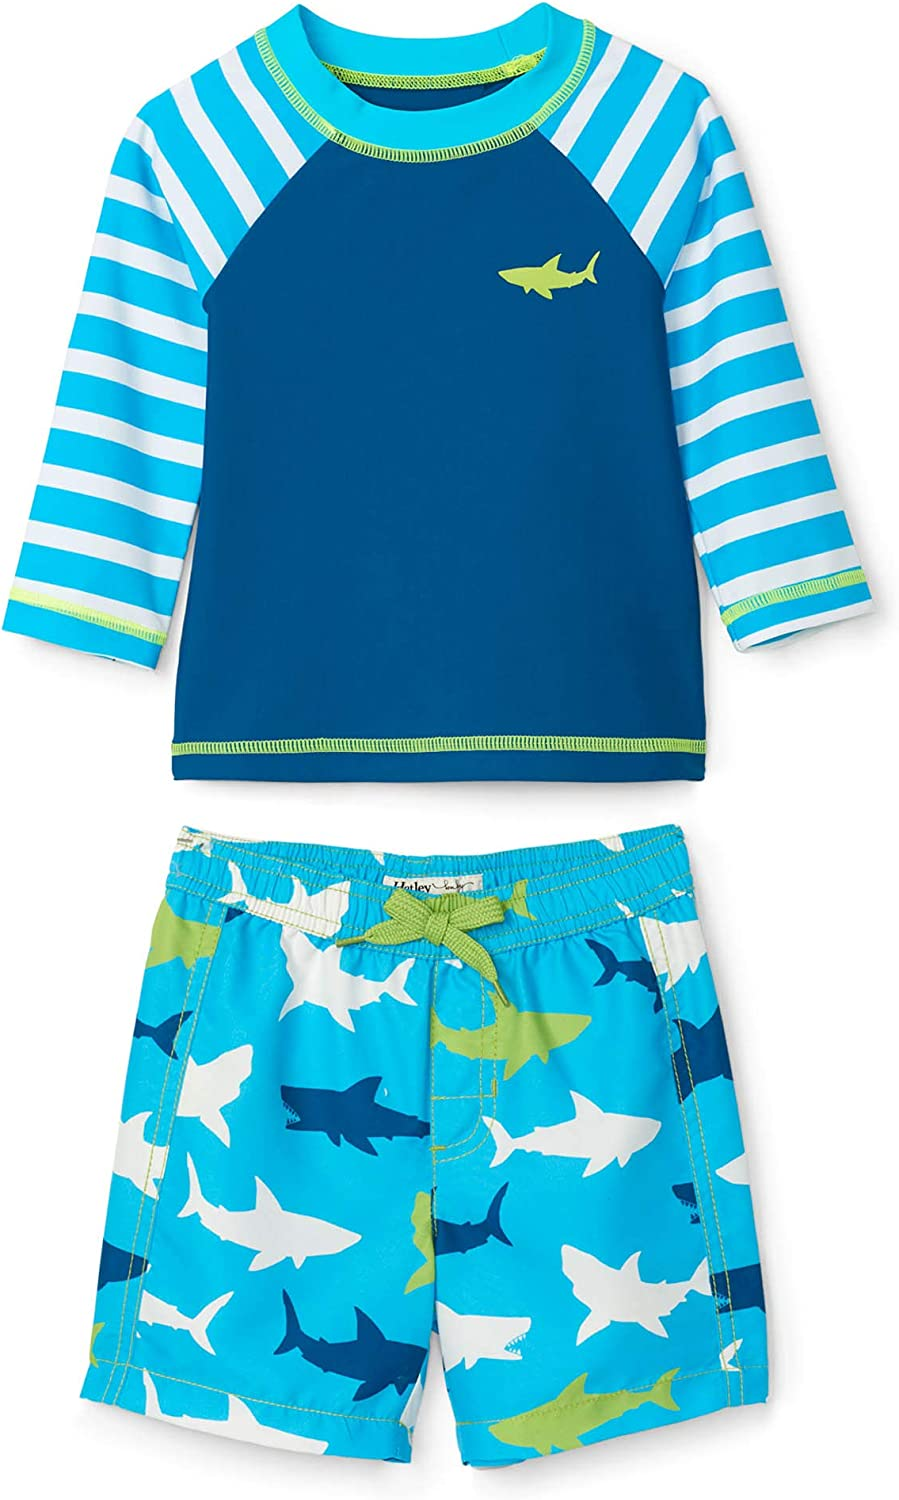 Hatley Boys' Rash Guard Swimsuit Sets